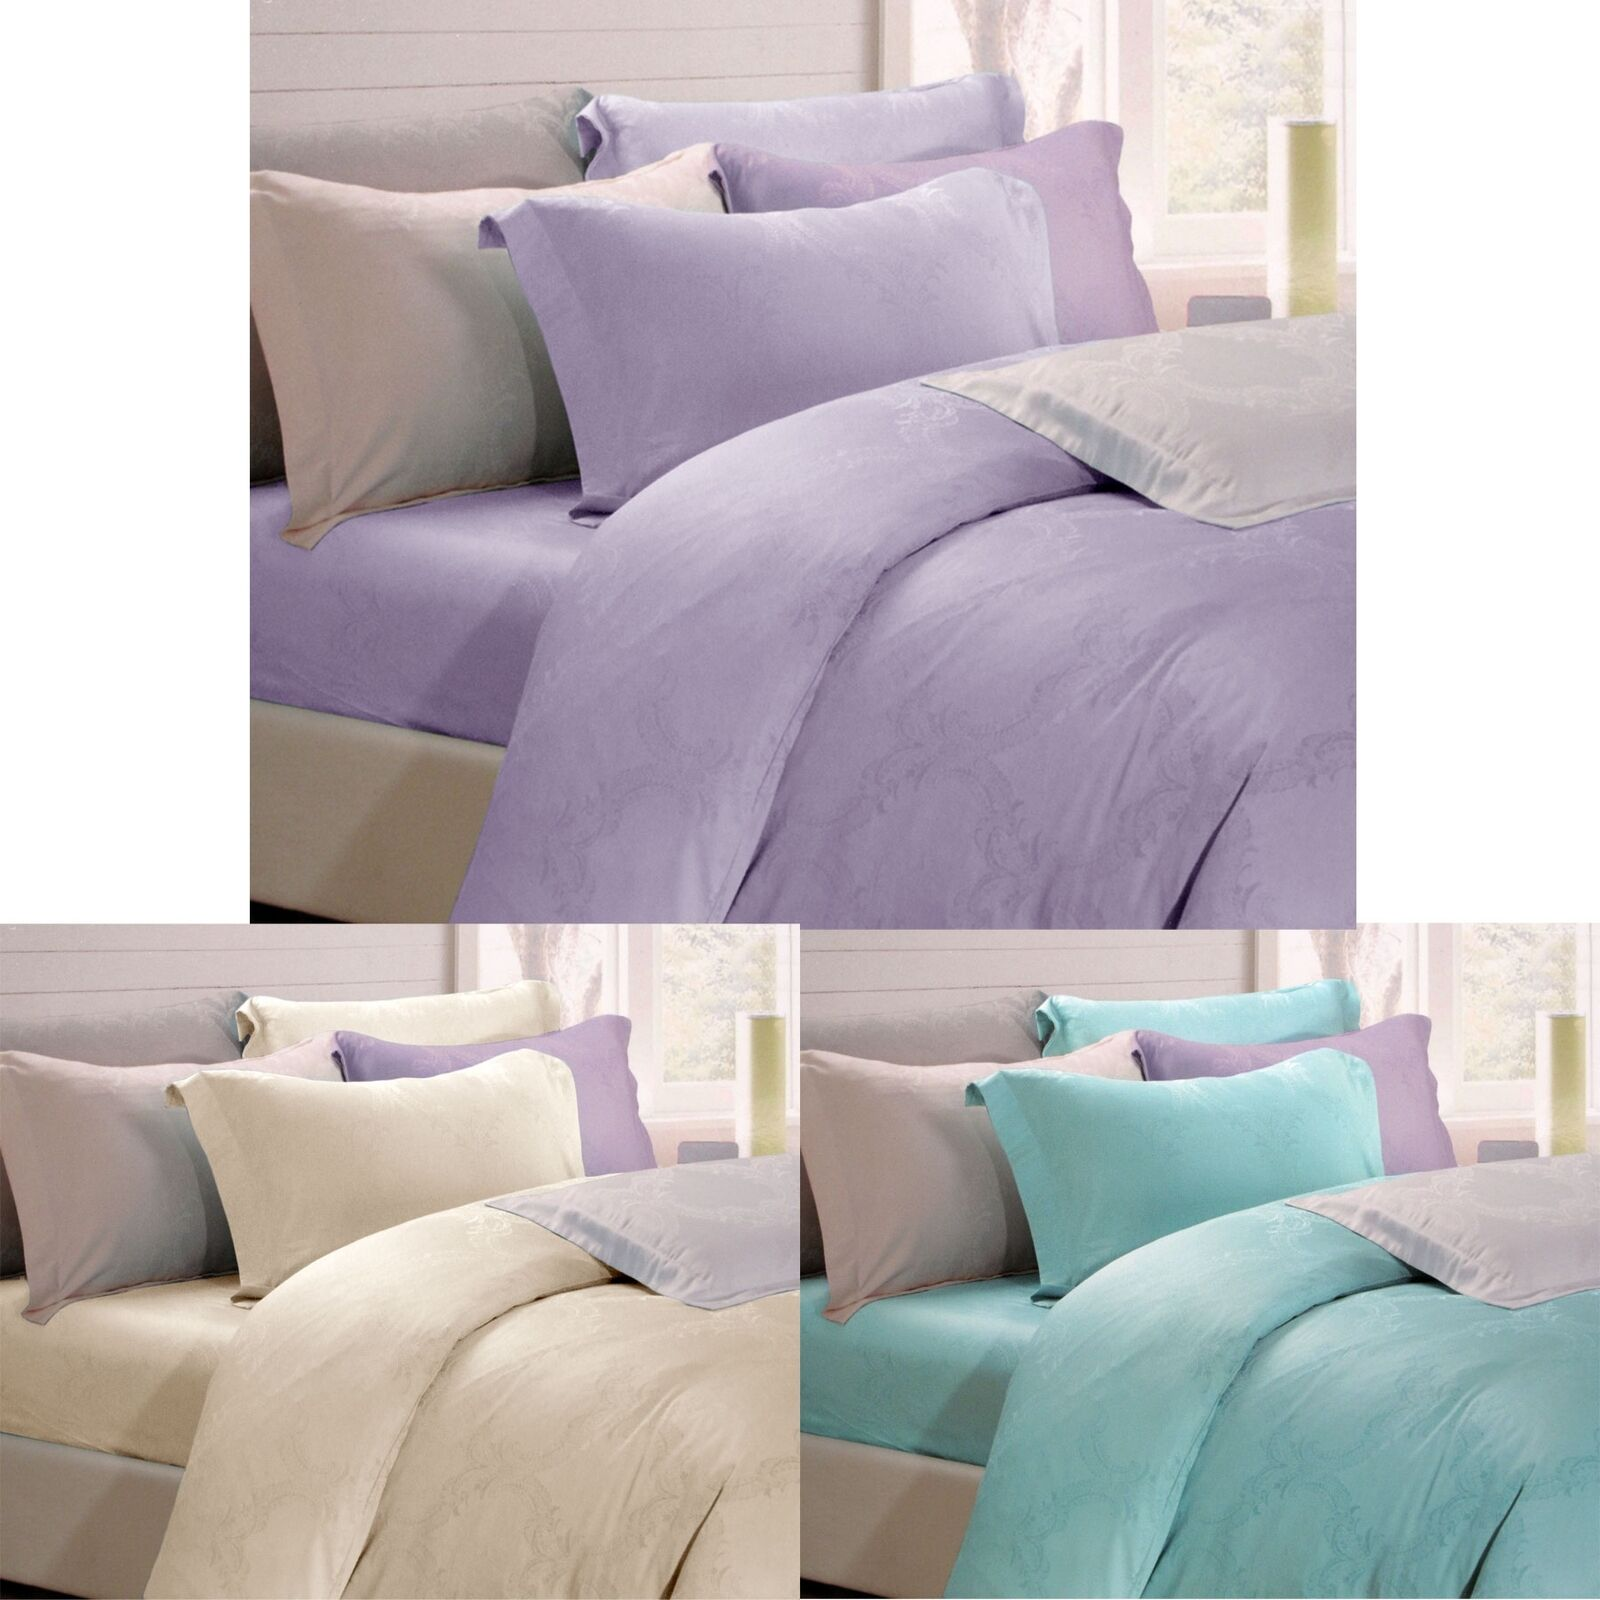 6 Pce 900TC Pure Tencel Damask Jacquard Quilt Cover Set + Fitted + B covers